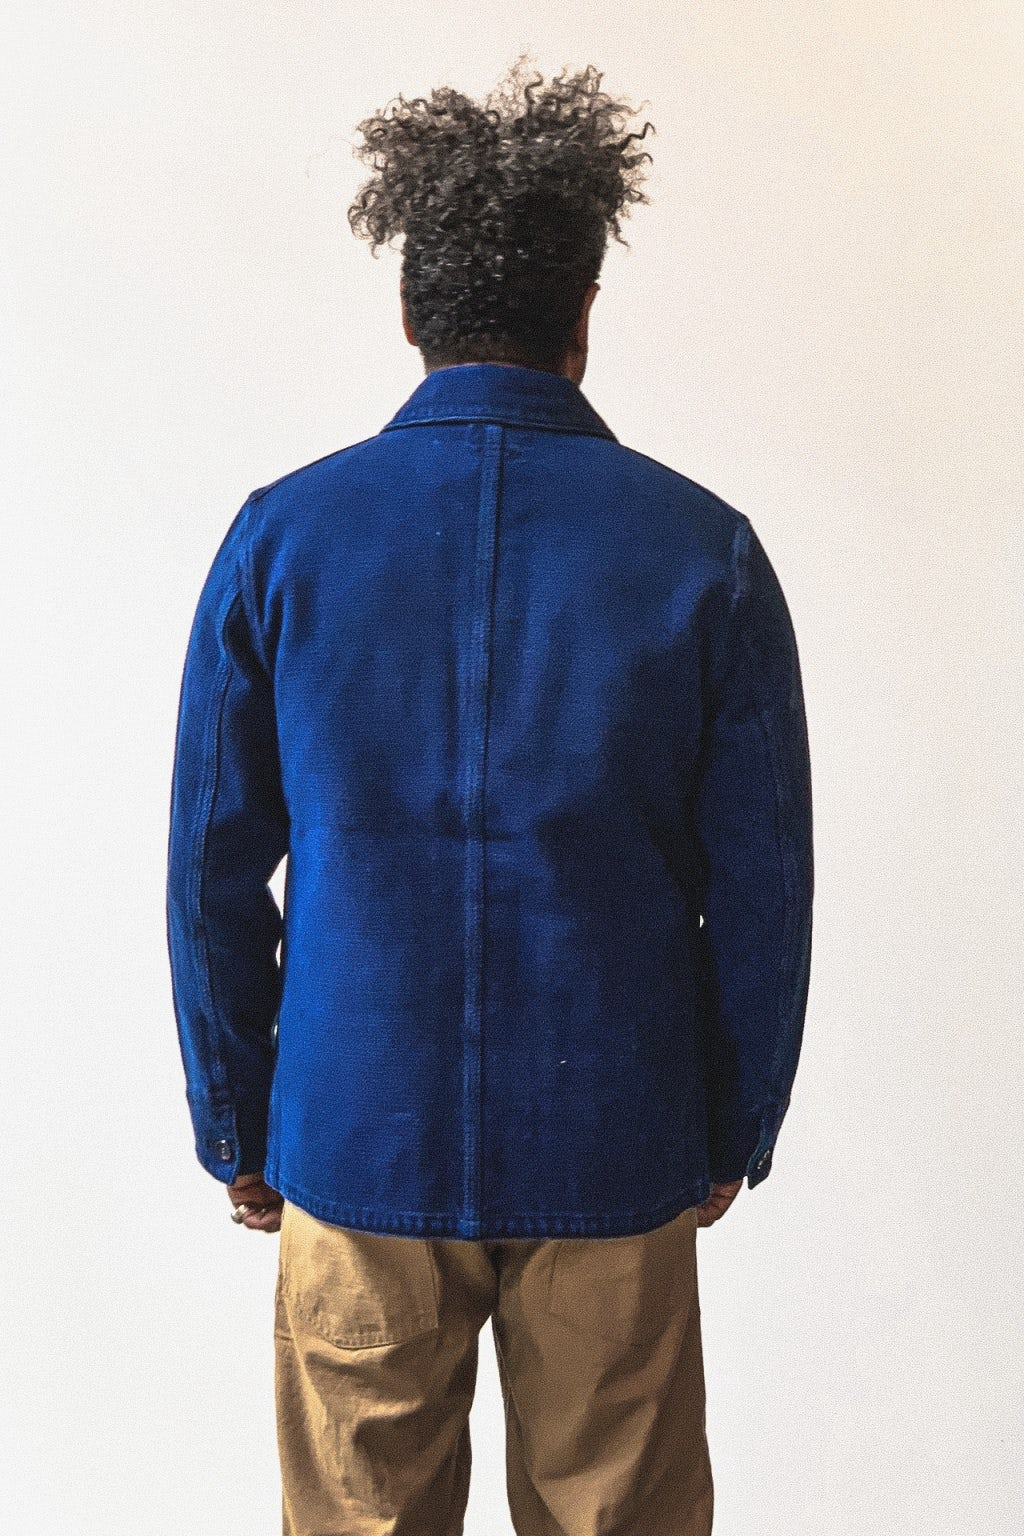 Blue Blue Japan Sashiko Coverall Jacket Pure Indigo Washed